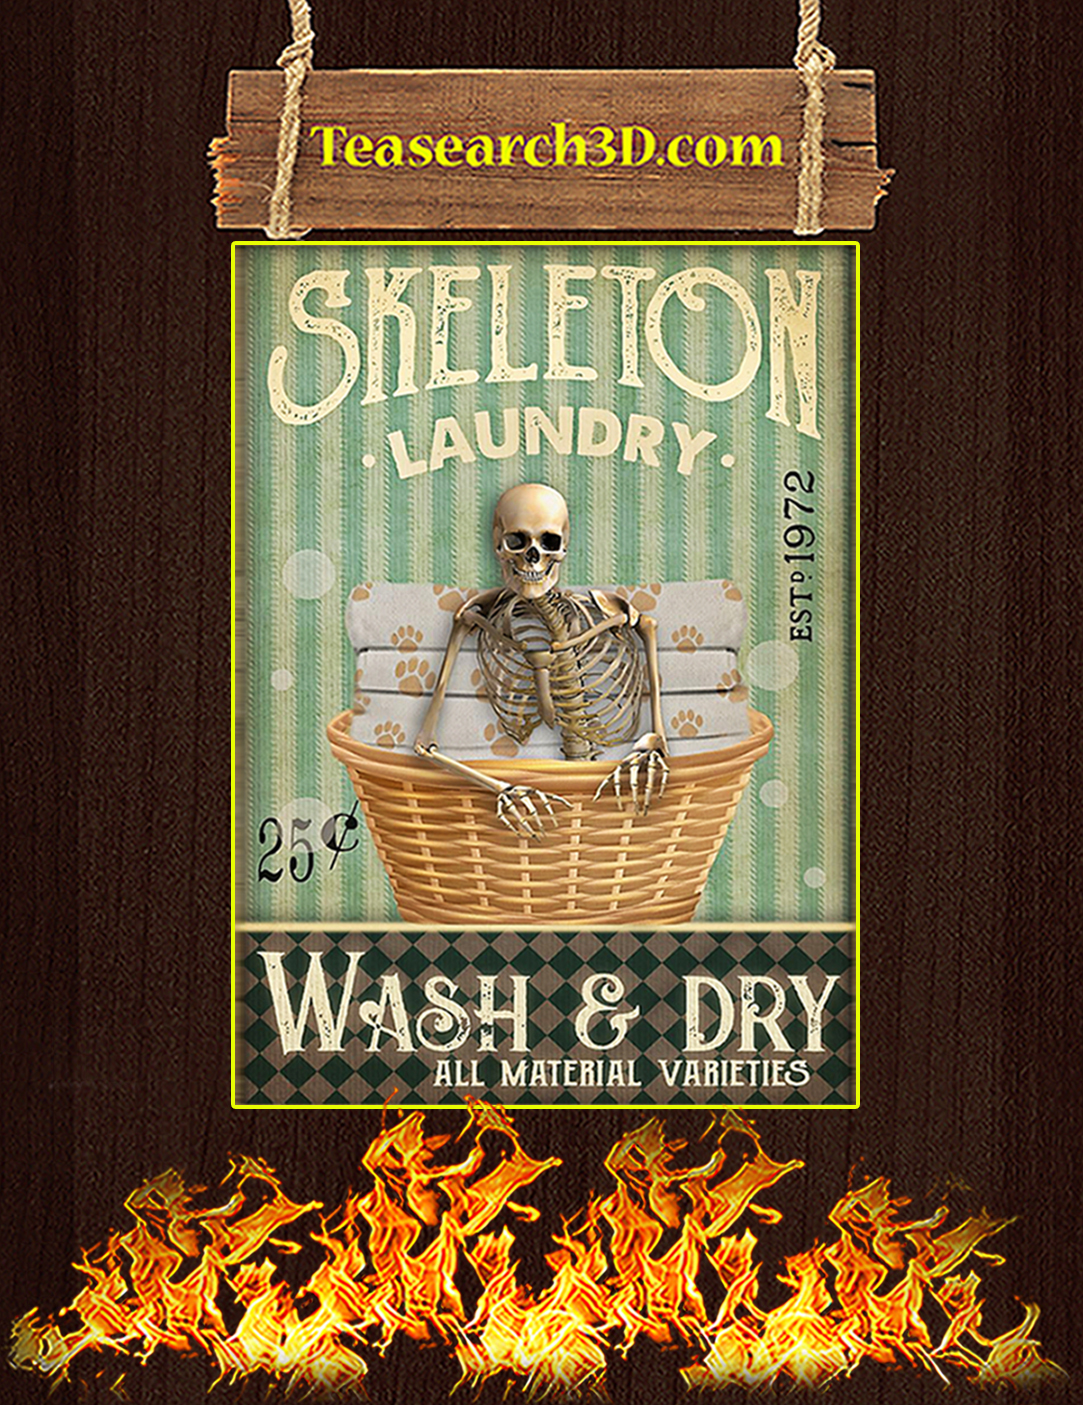 Skeleton laundry wash and dry poster A2